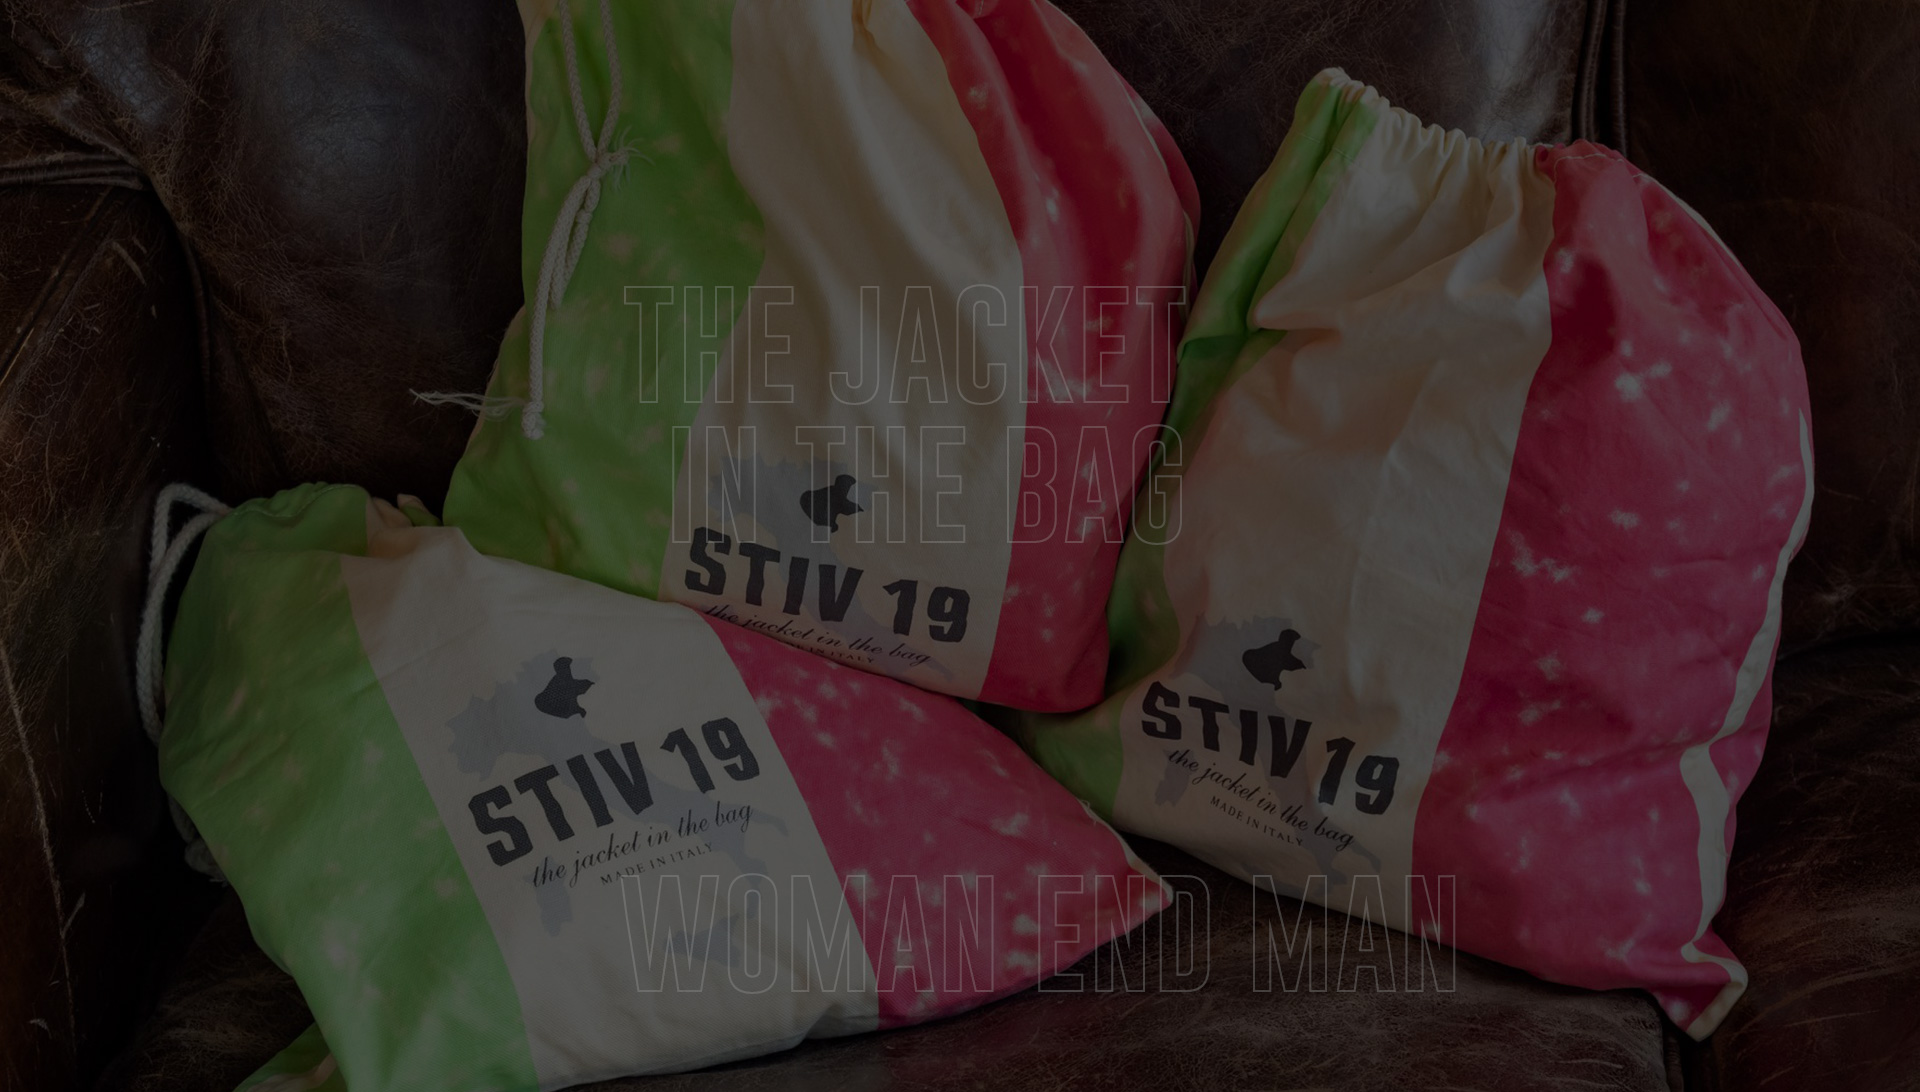 STIV19 - The jacket in the bag